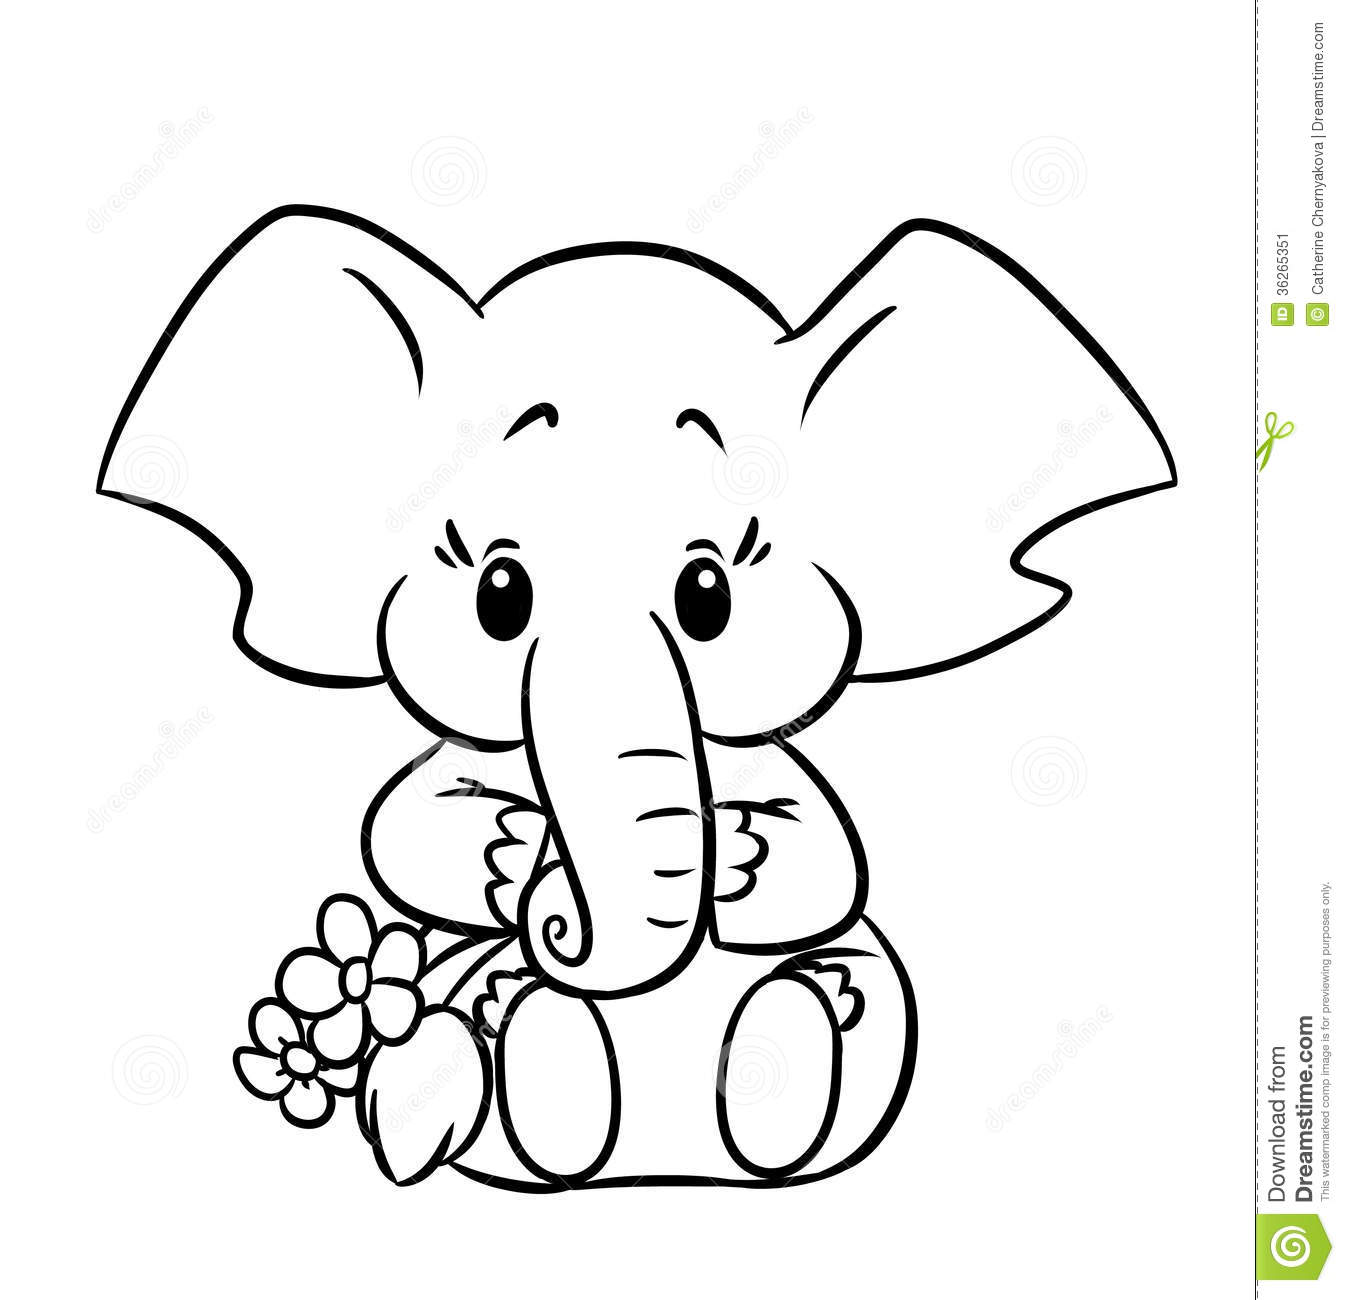 Free Elephant Coloring Sheets 26 For Your Free Coloring Book With